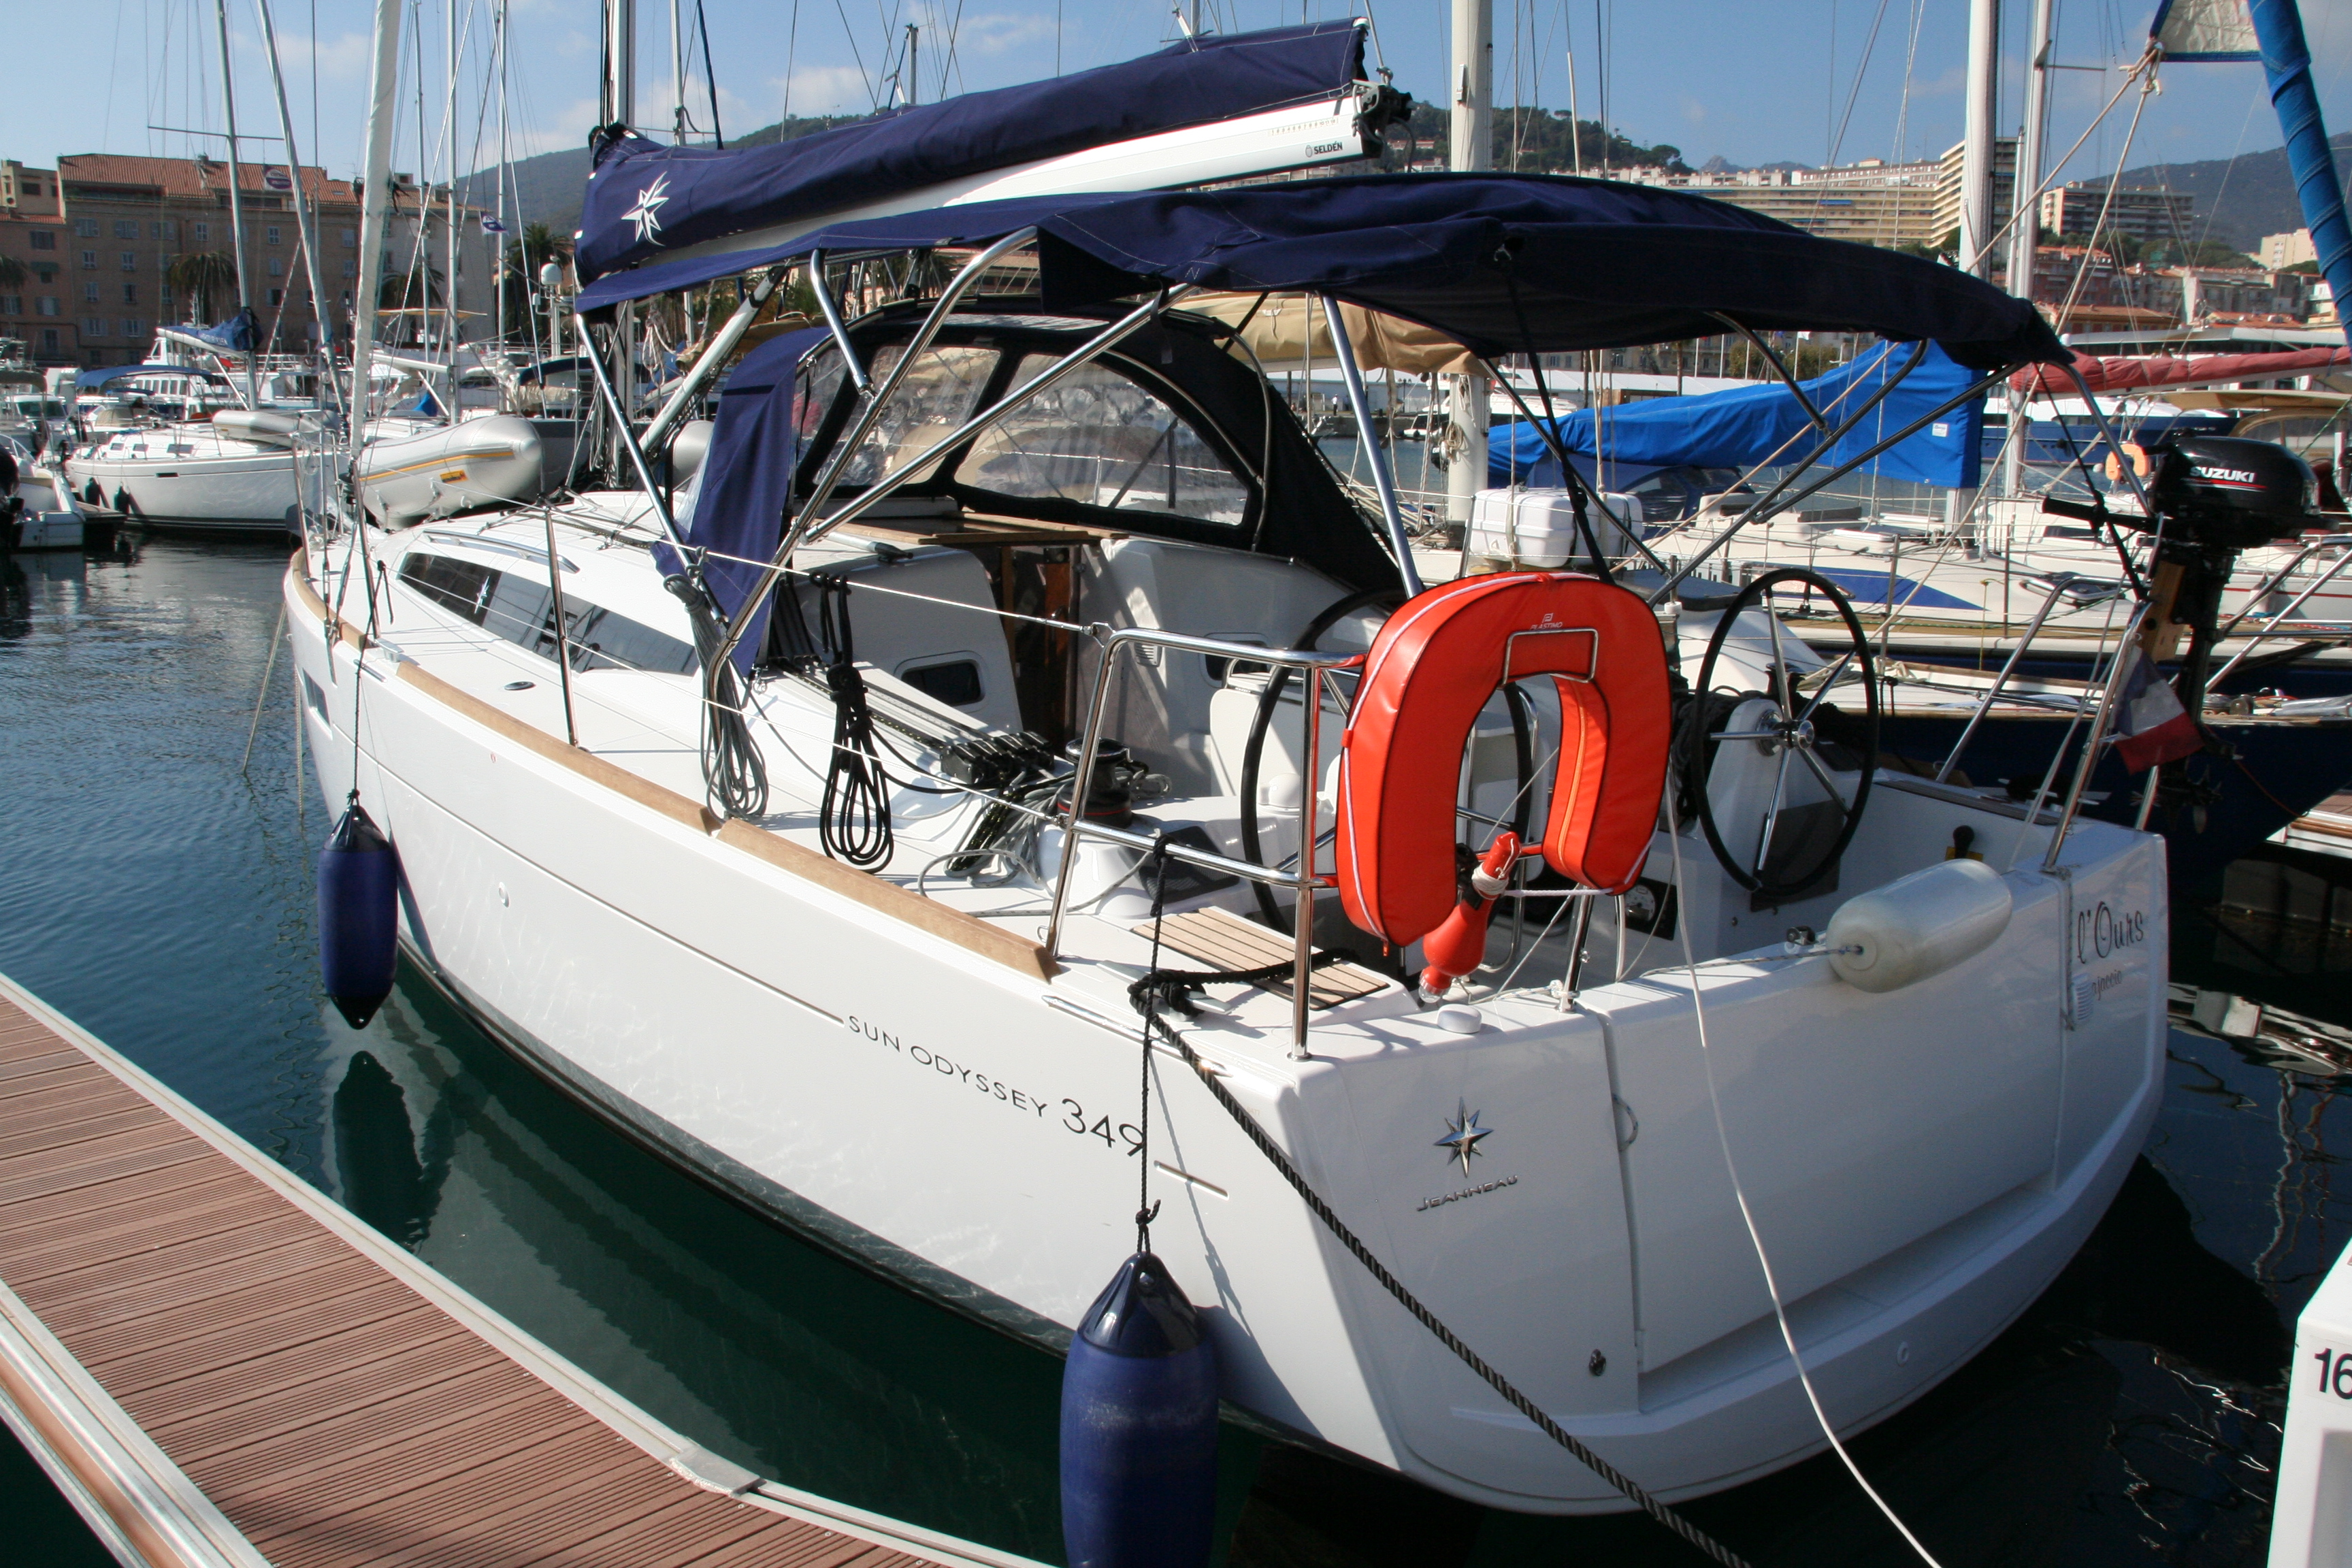 """L'OURS"", Sun Odyssey 349 version 3 cabines + 1 SDB (2017)"